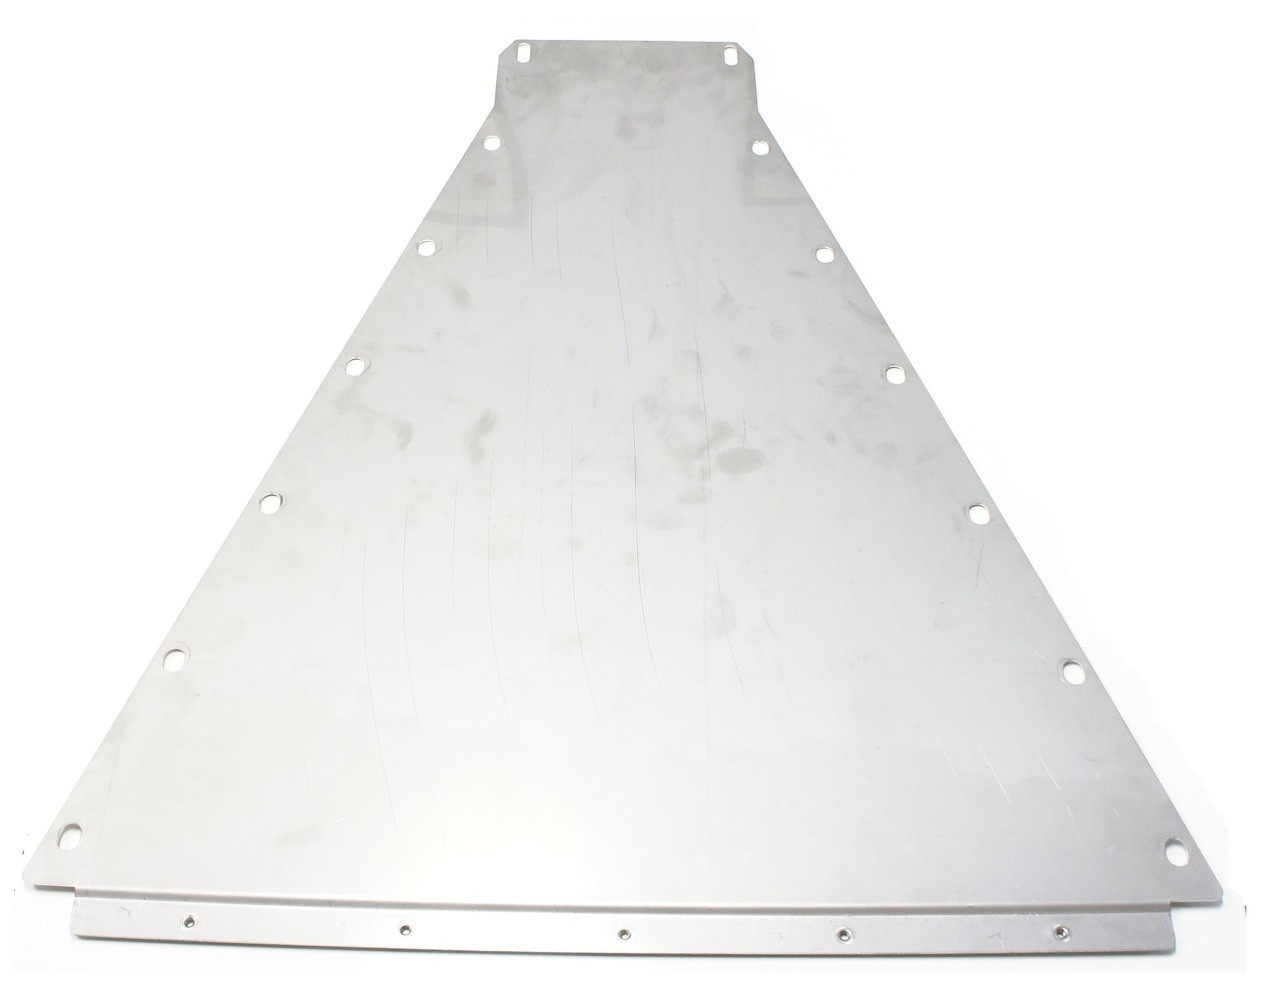 8. FUEL TANK CLOSING PLATE STAINLESS